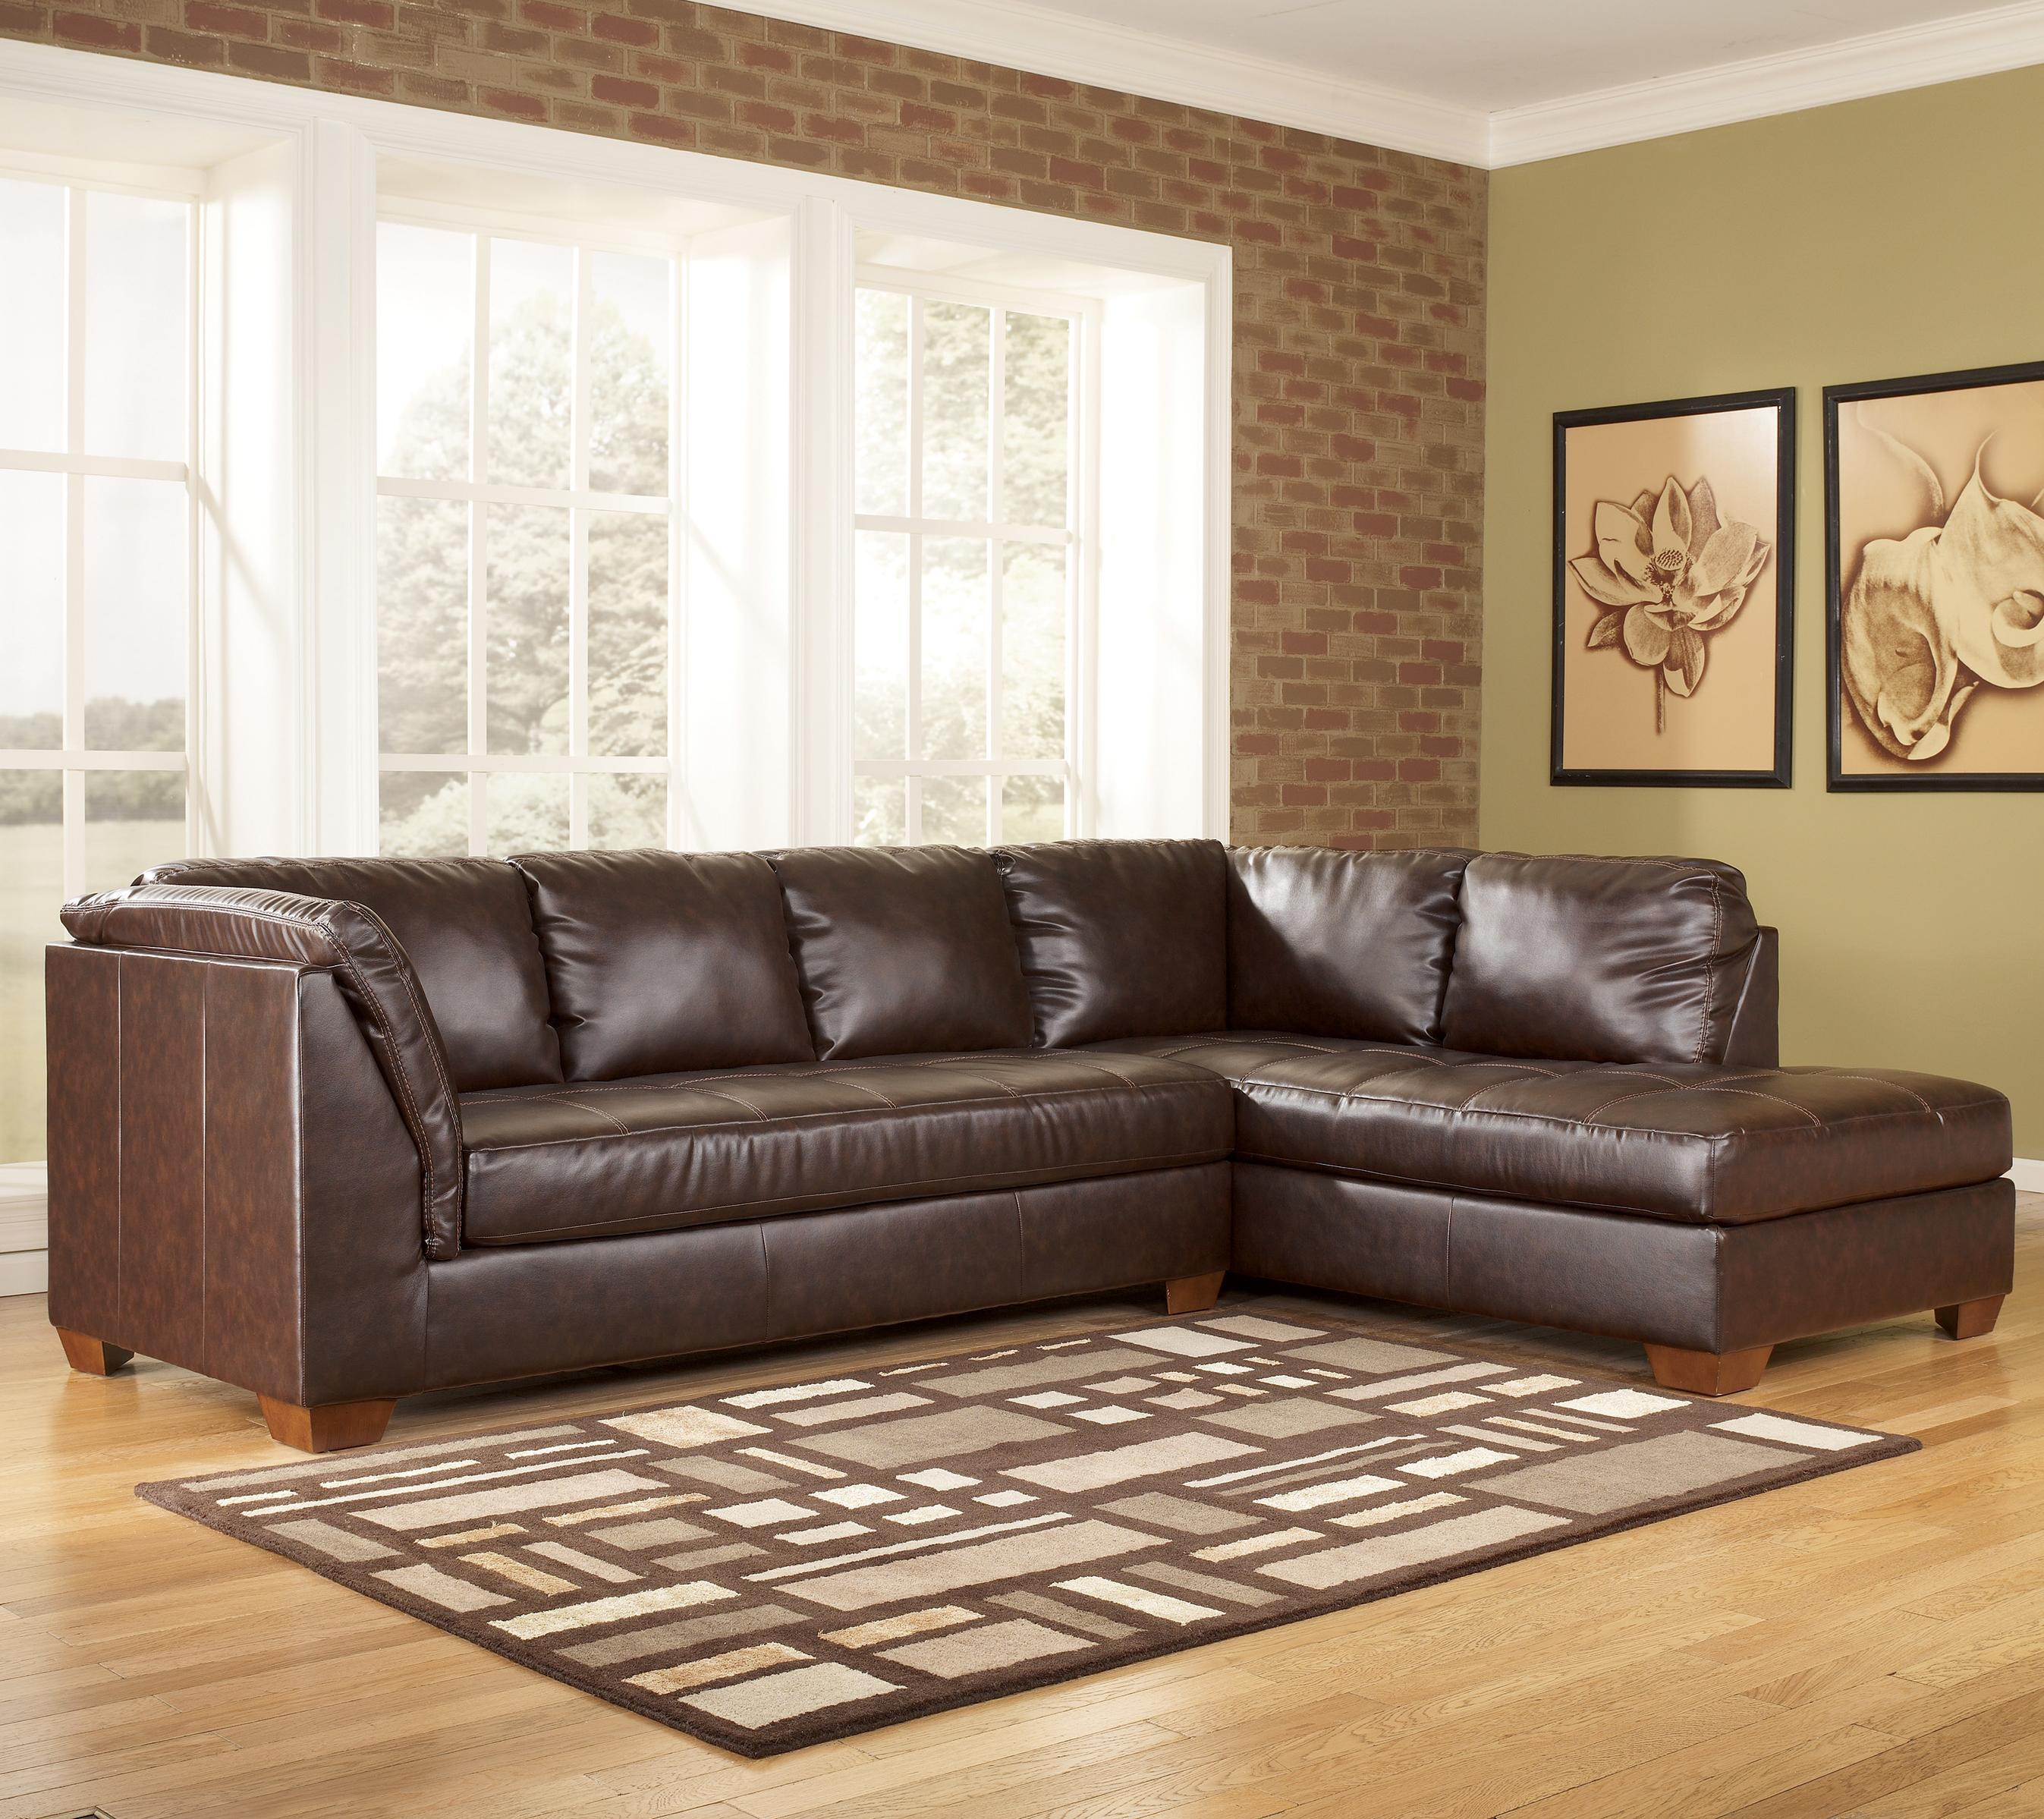 Signature Design by Ashley Fairplay DuraBlend® 2 Piece Sectional Group - Item Number: 448017+66